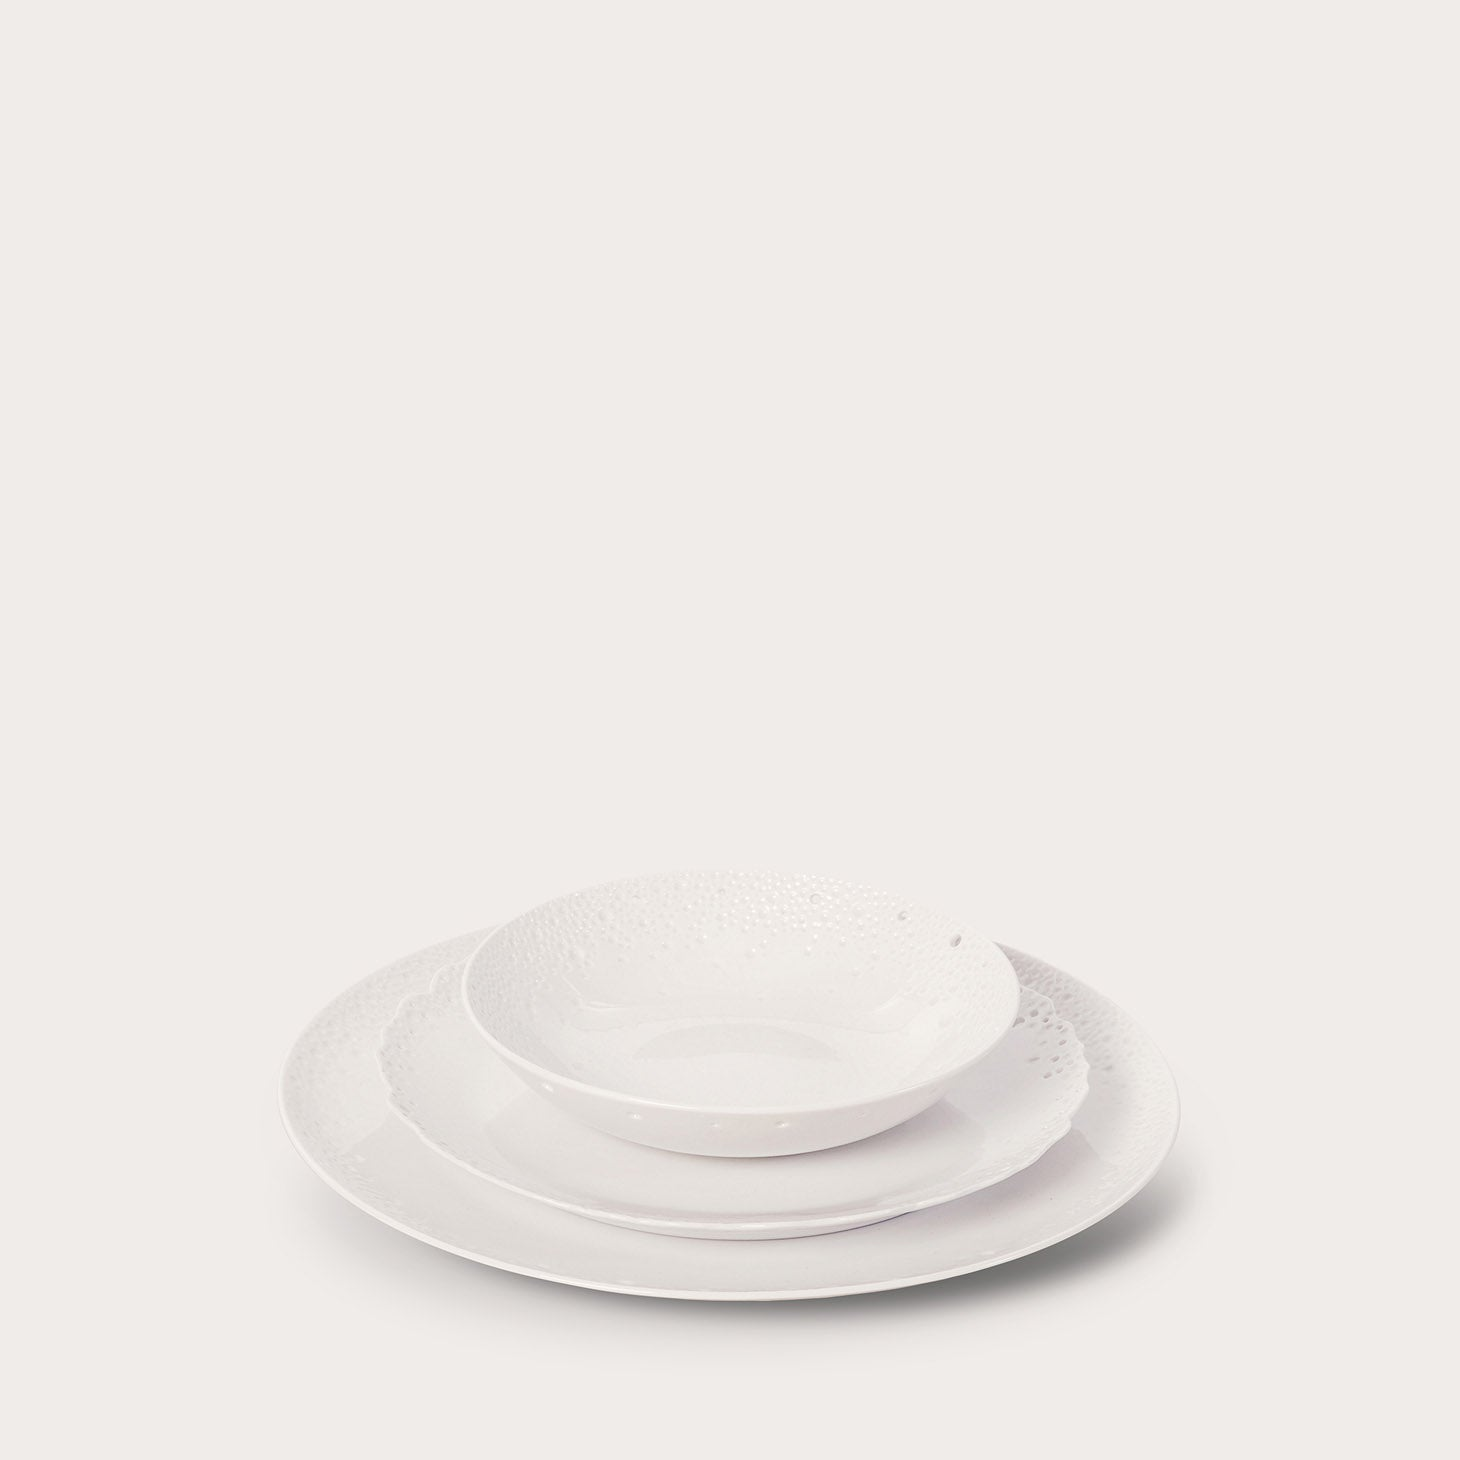 White Coral Plates Accessories Ted Muehling Designer Furniture Sku: 542-100-10091